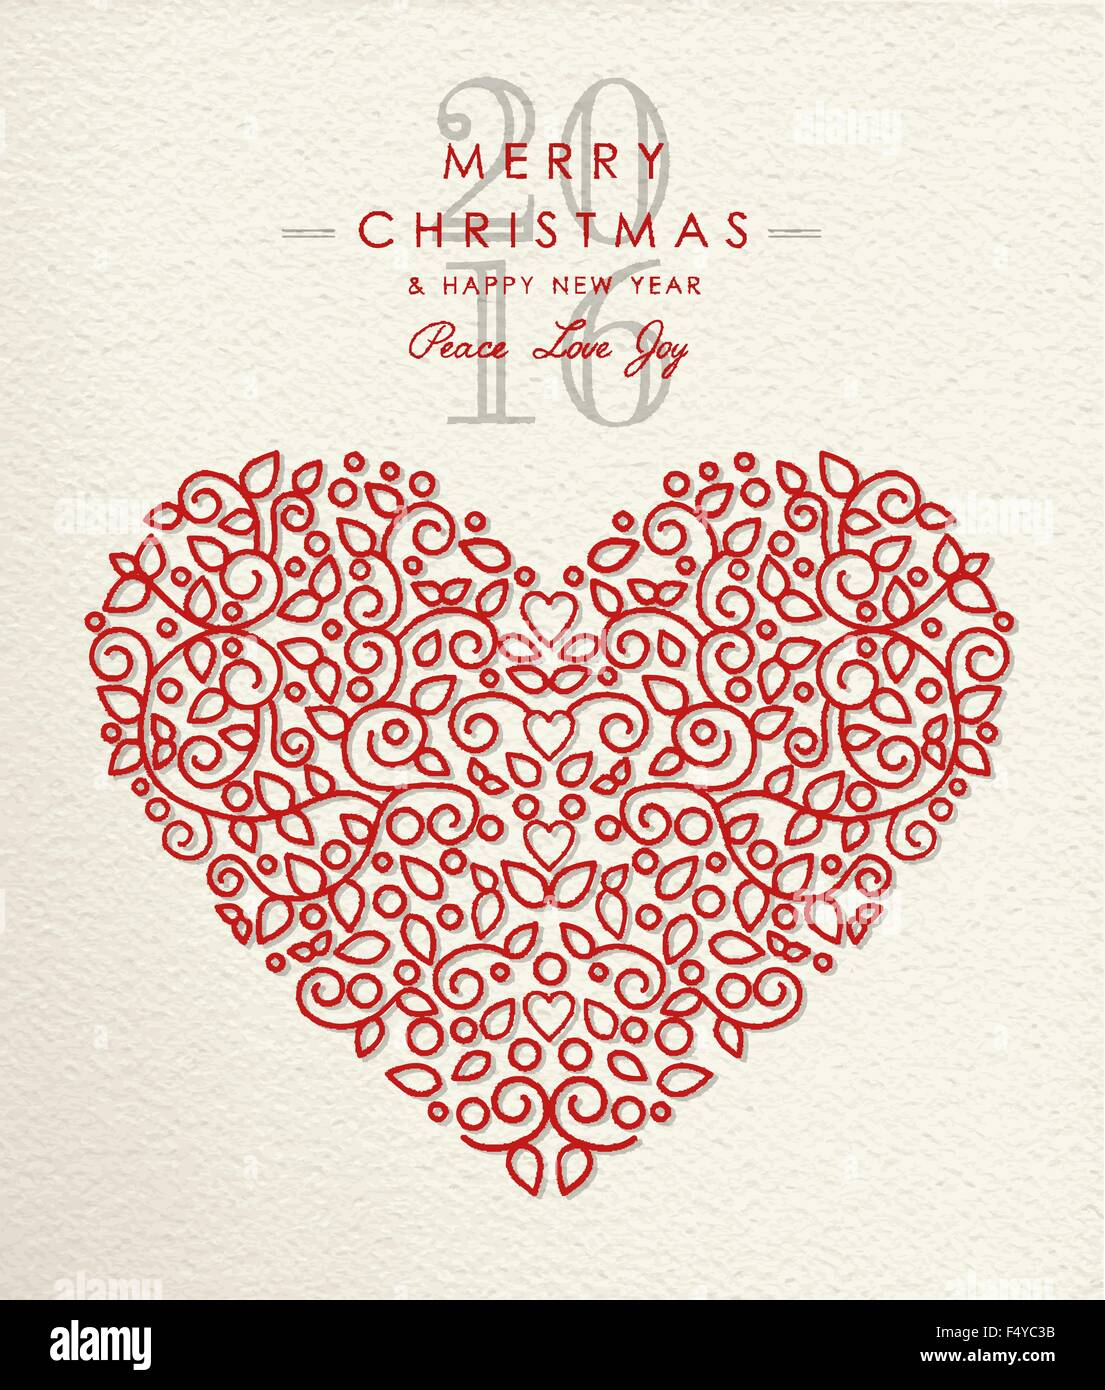 Merry Christmas Happy New Year 2016 Heart Shape In